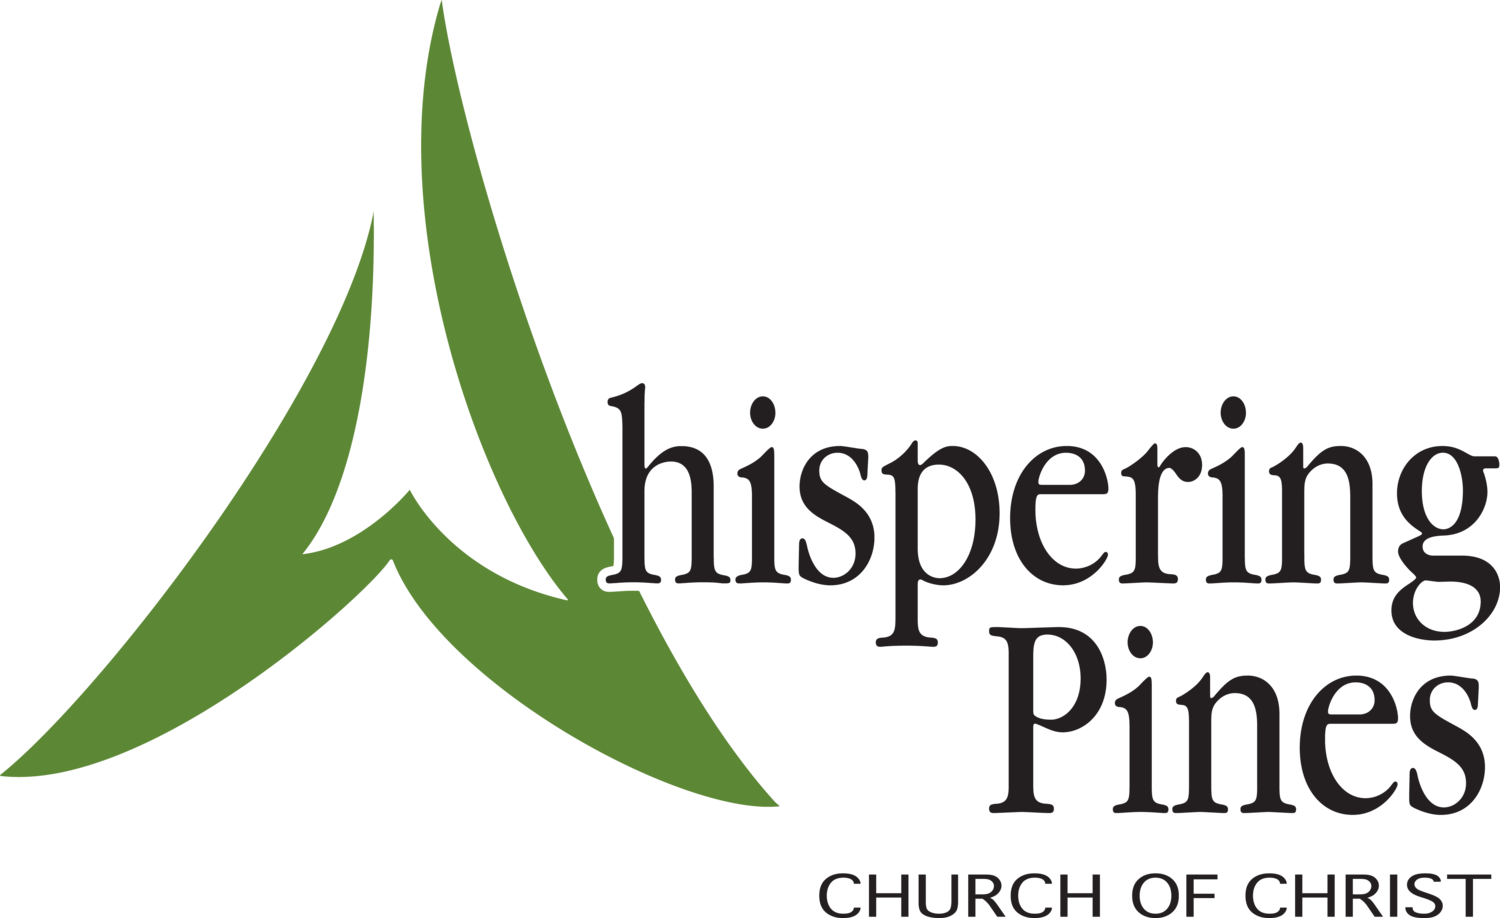 Whispering Pines Church of Christ